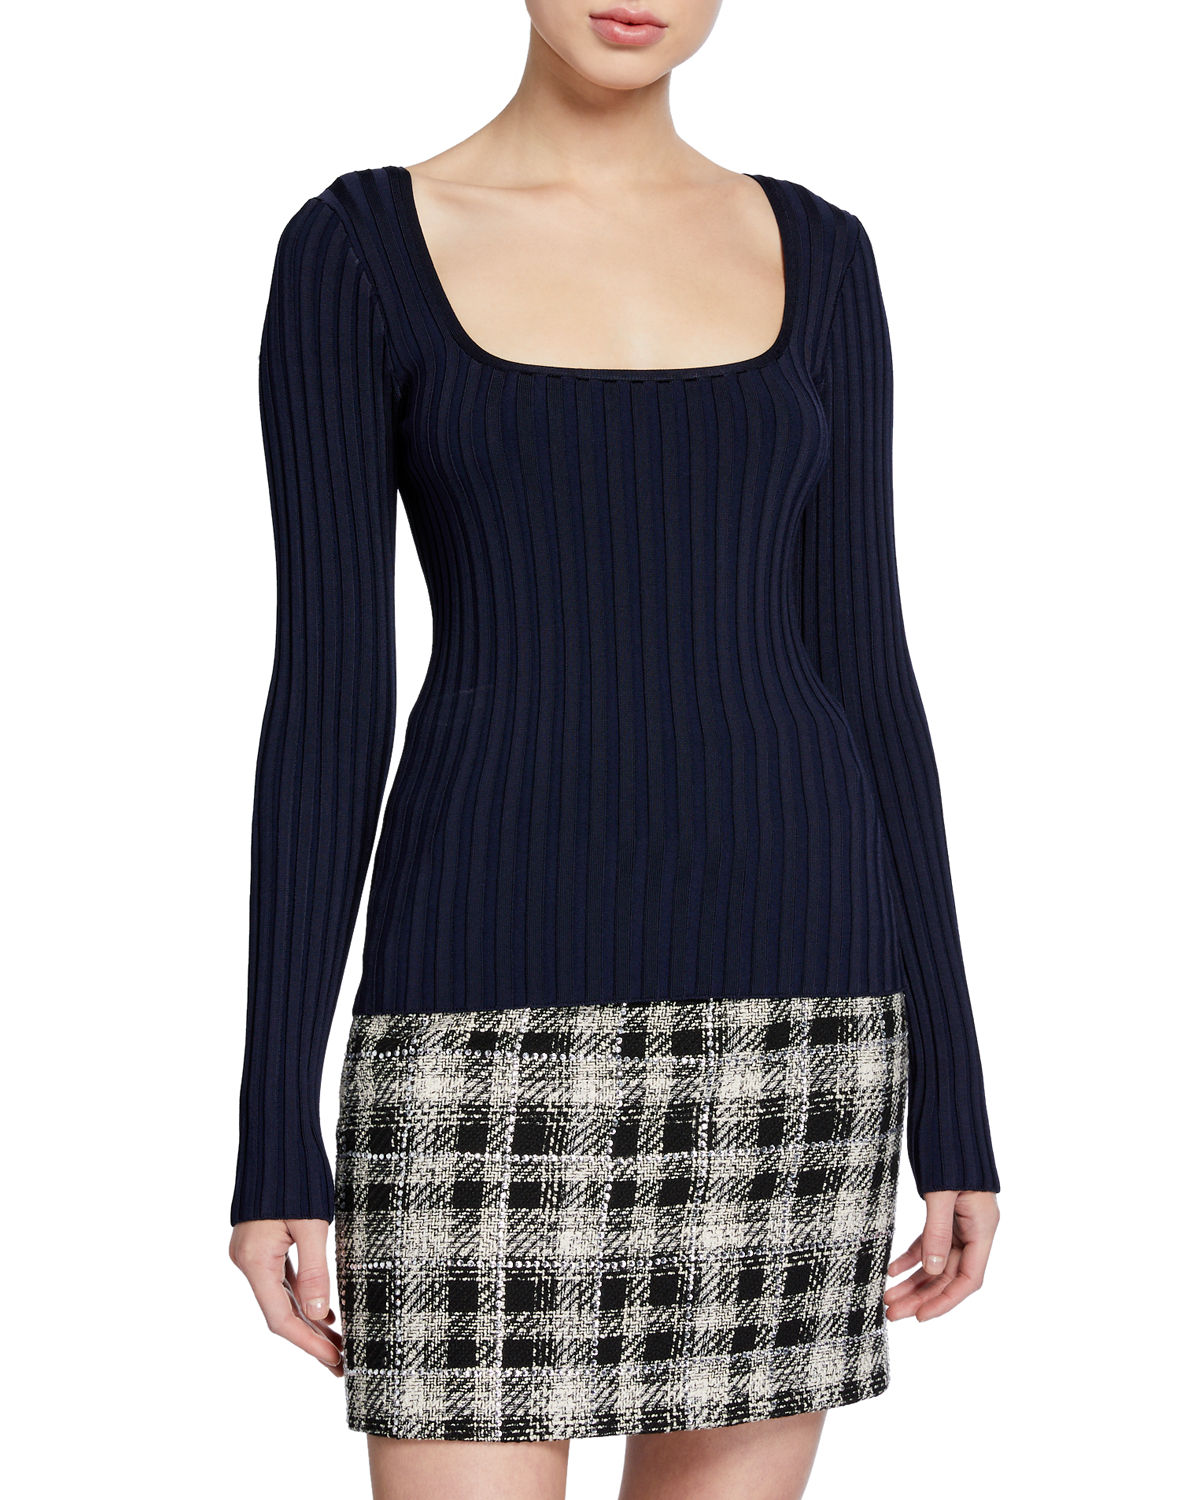 Veronica Beard Sweaters CLARA SQUARE-NECK RIBBED PULLOVER SWEATER